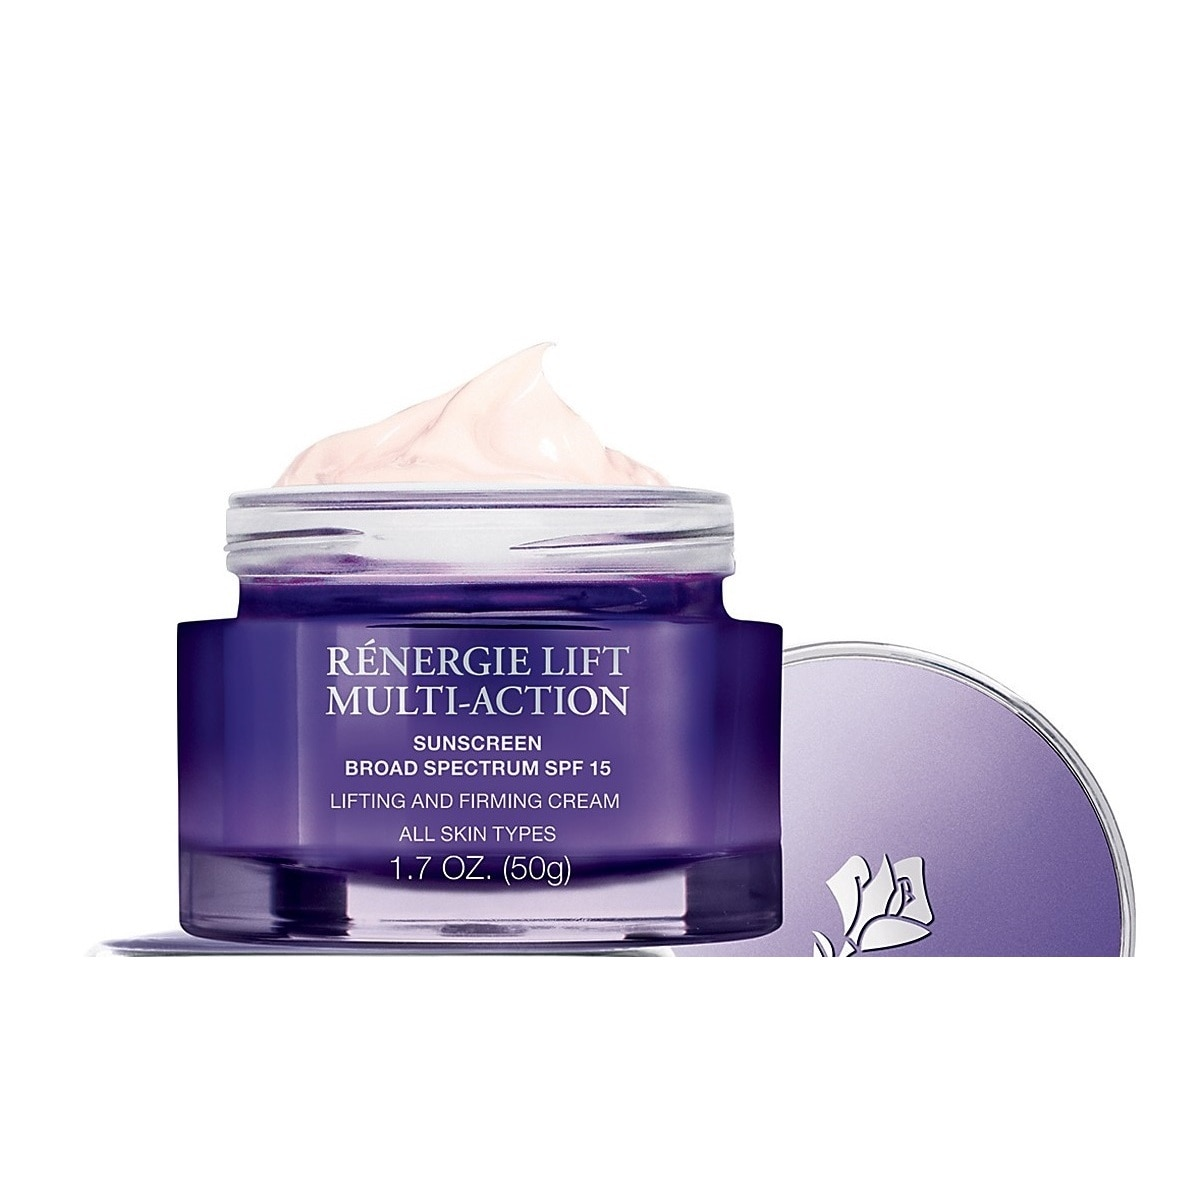 Renergie Lift Multi-Action Lifting and Firming Light Moisturizer Cream by Lancôme #22